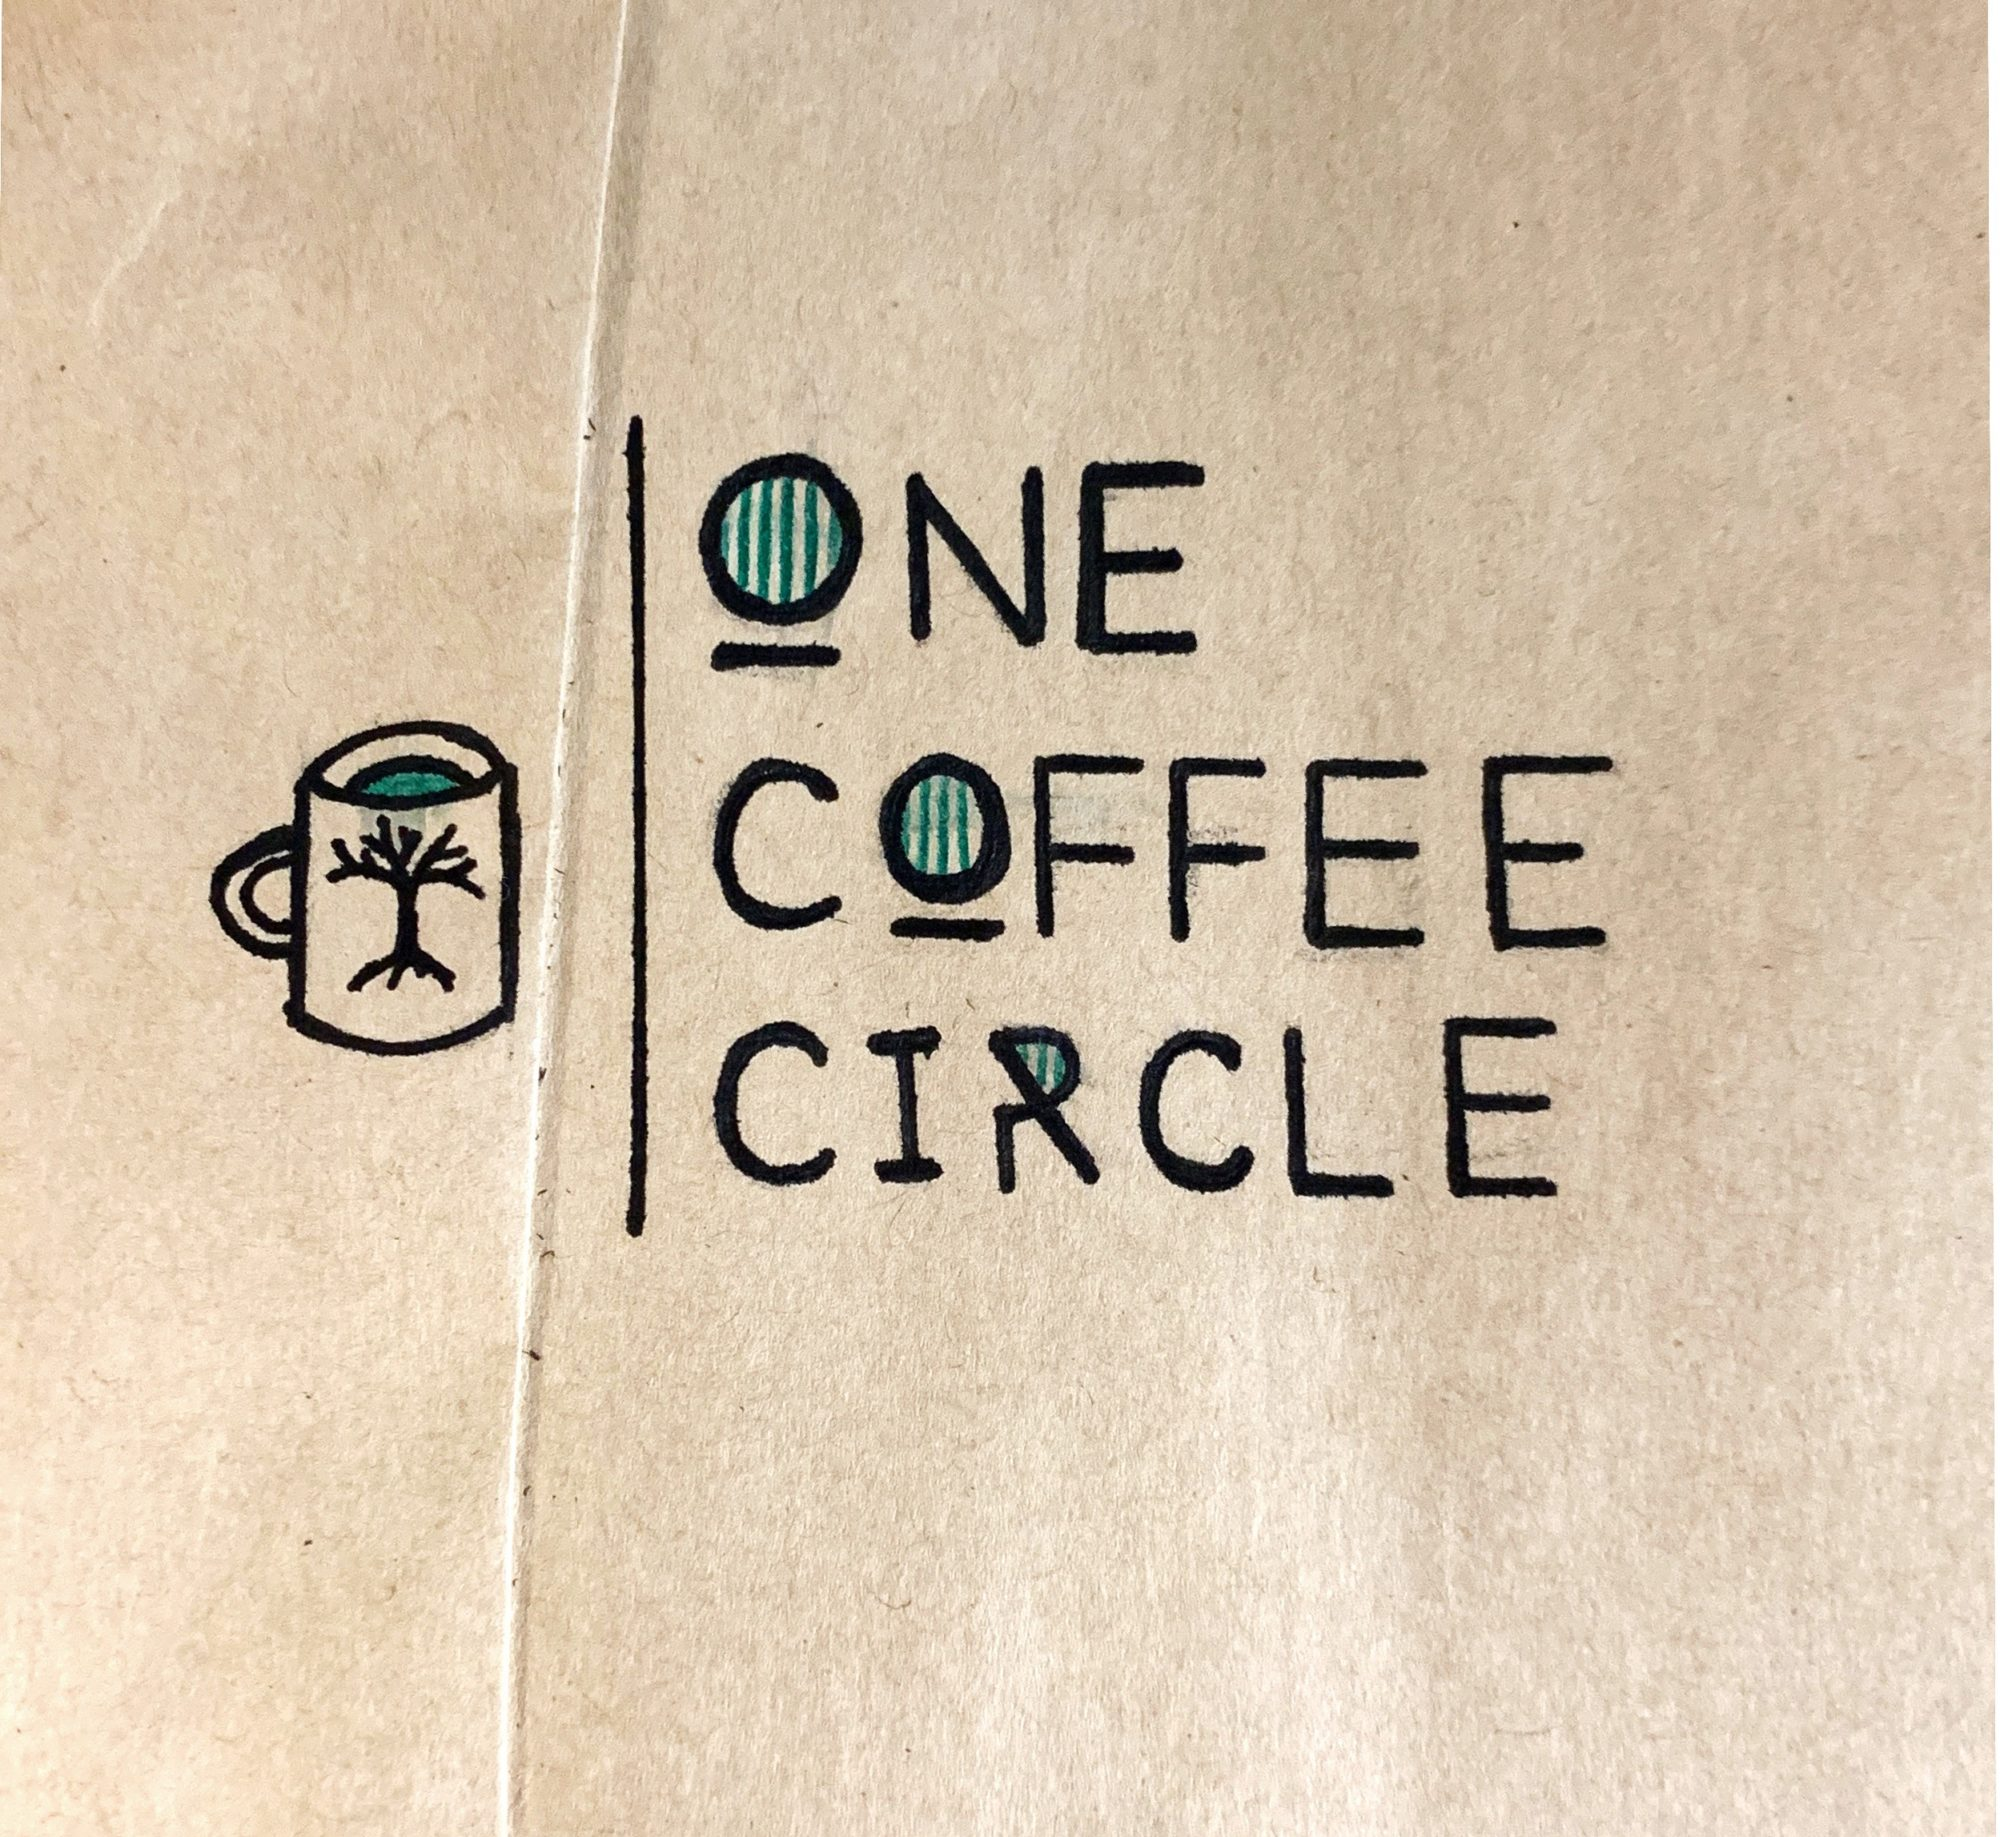 One Coffee Circle